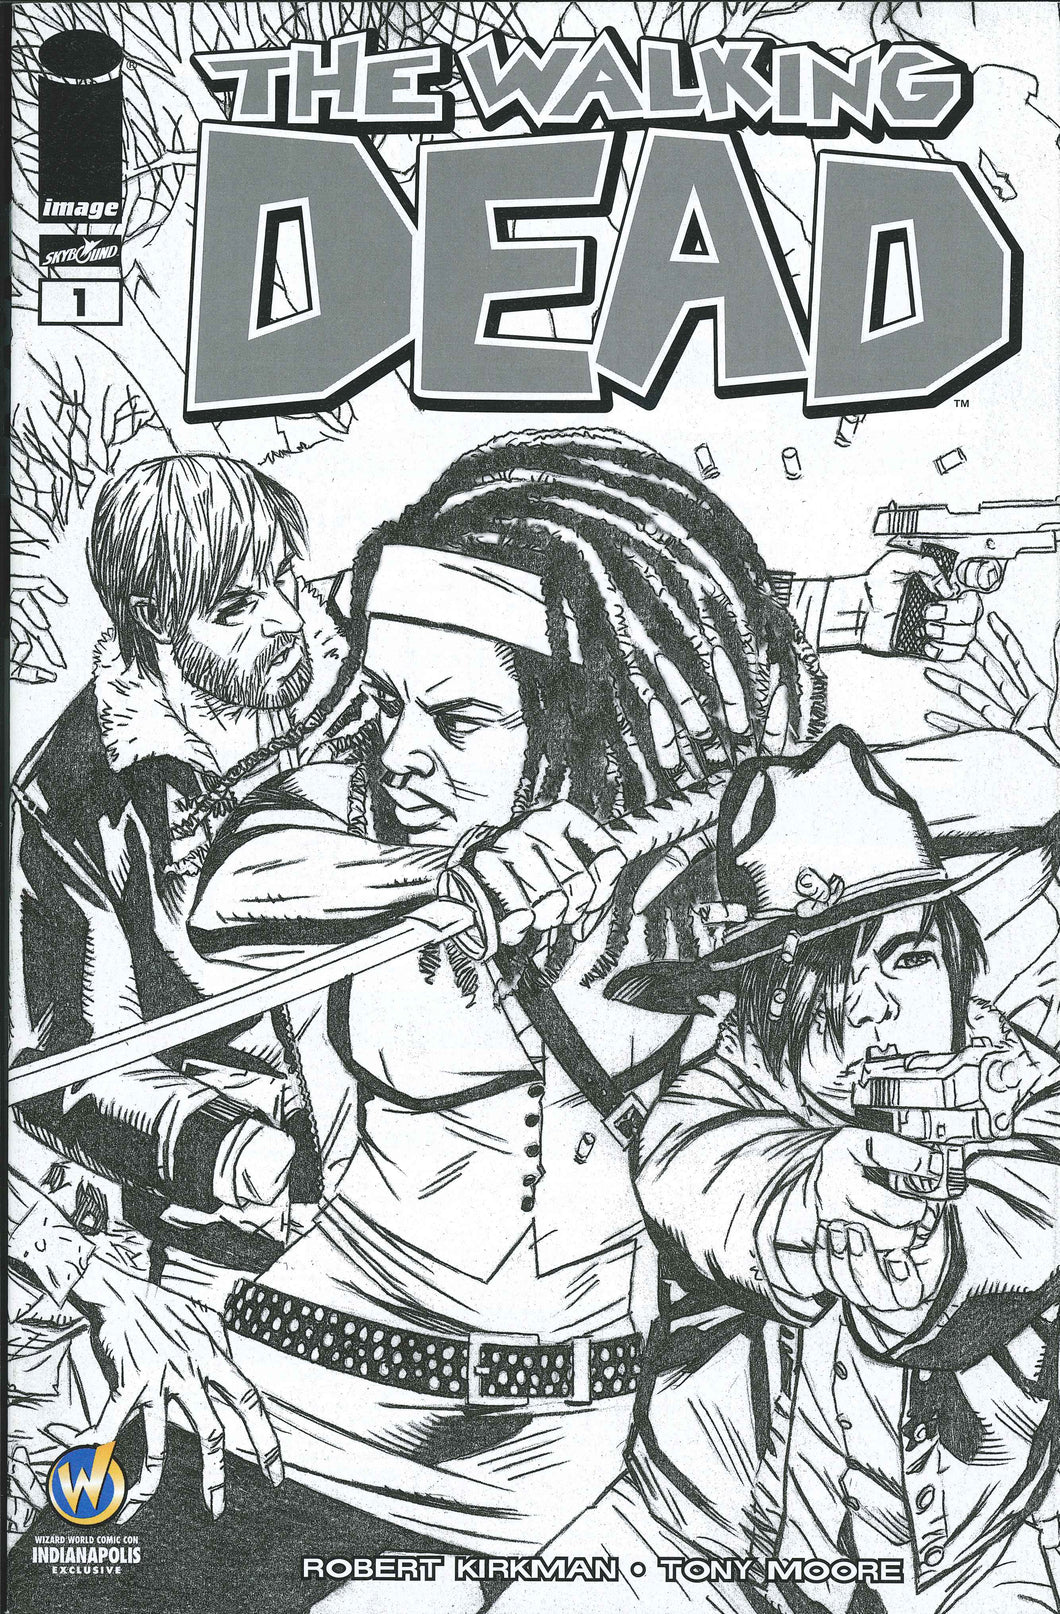 The Walking Dead #1 Wizard World Indianapolis Sketch Edition